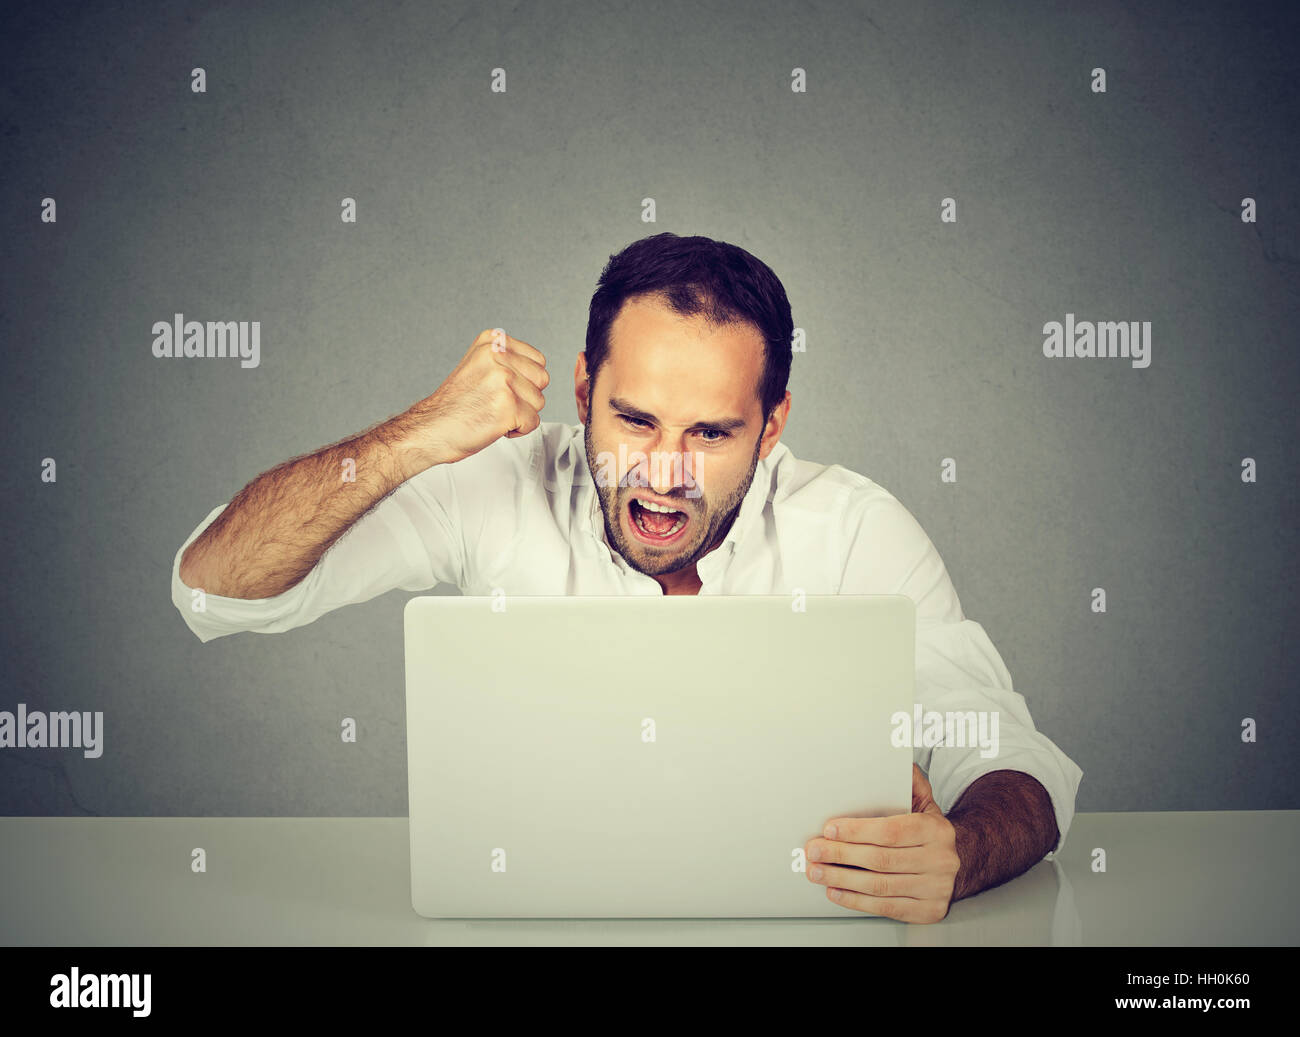 Portrait angry business man working on the laptop. Negative human emotion face expression - Stock Image